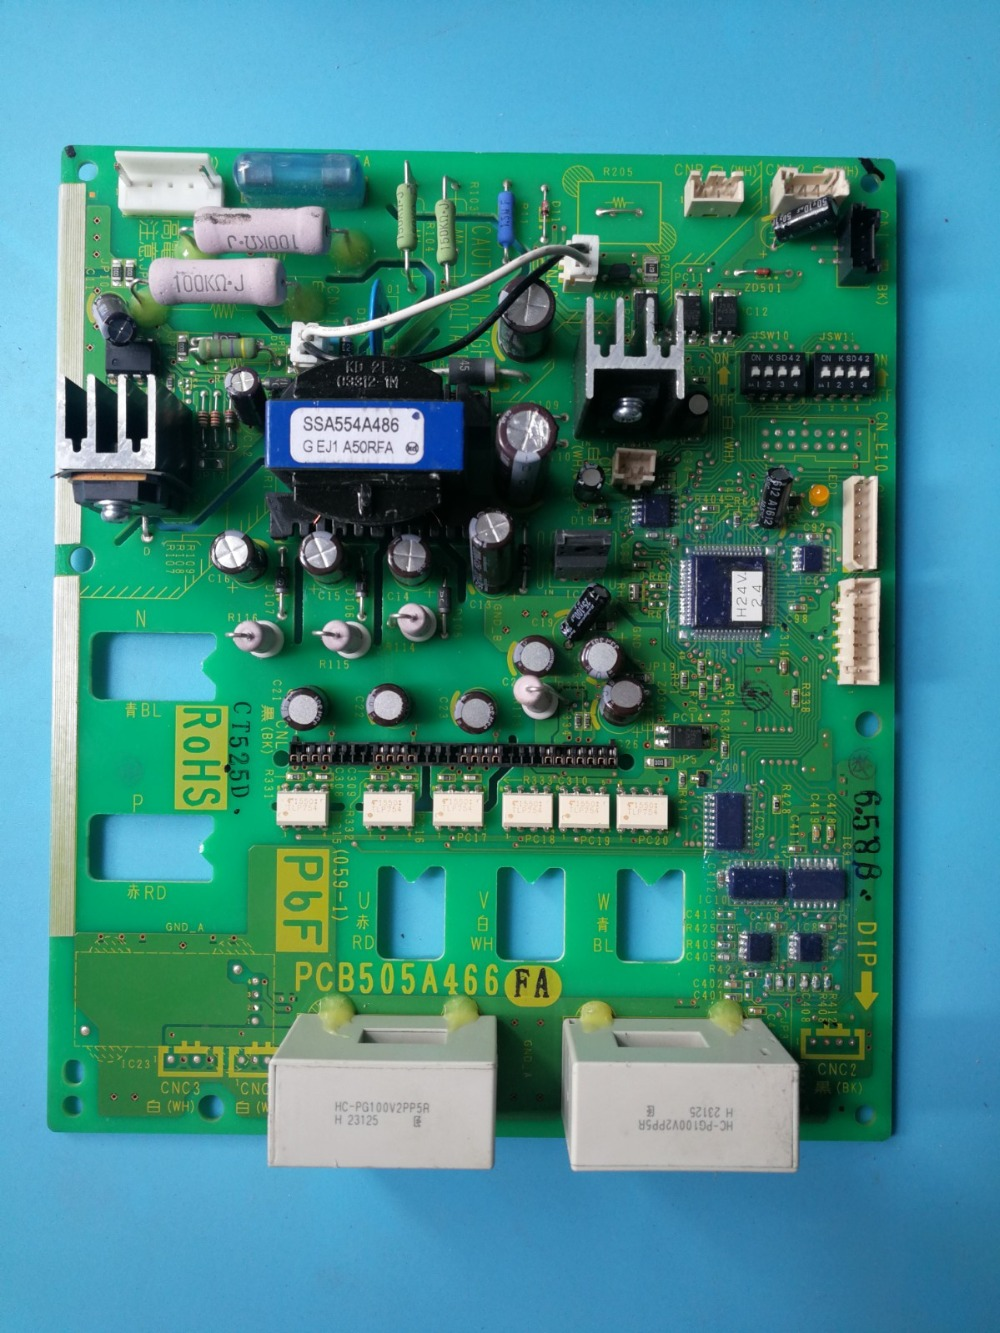 PCB505A466FA Good Working Tested